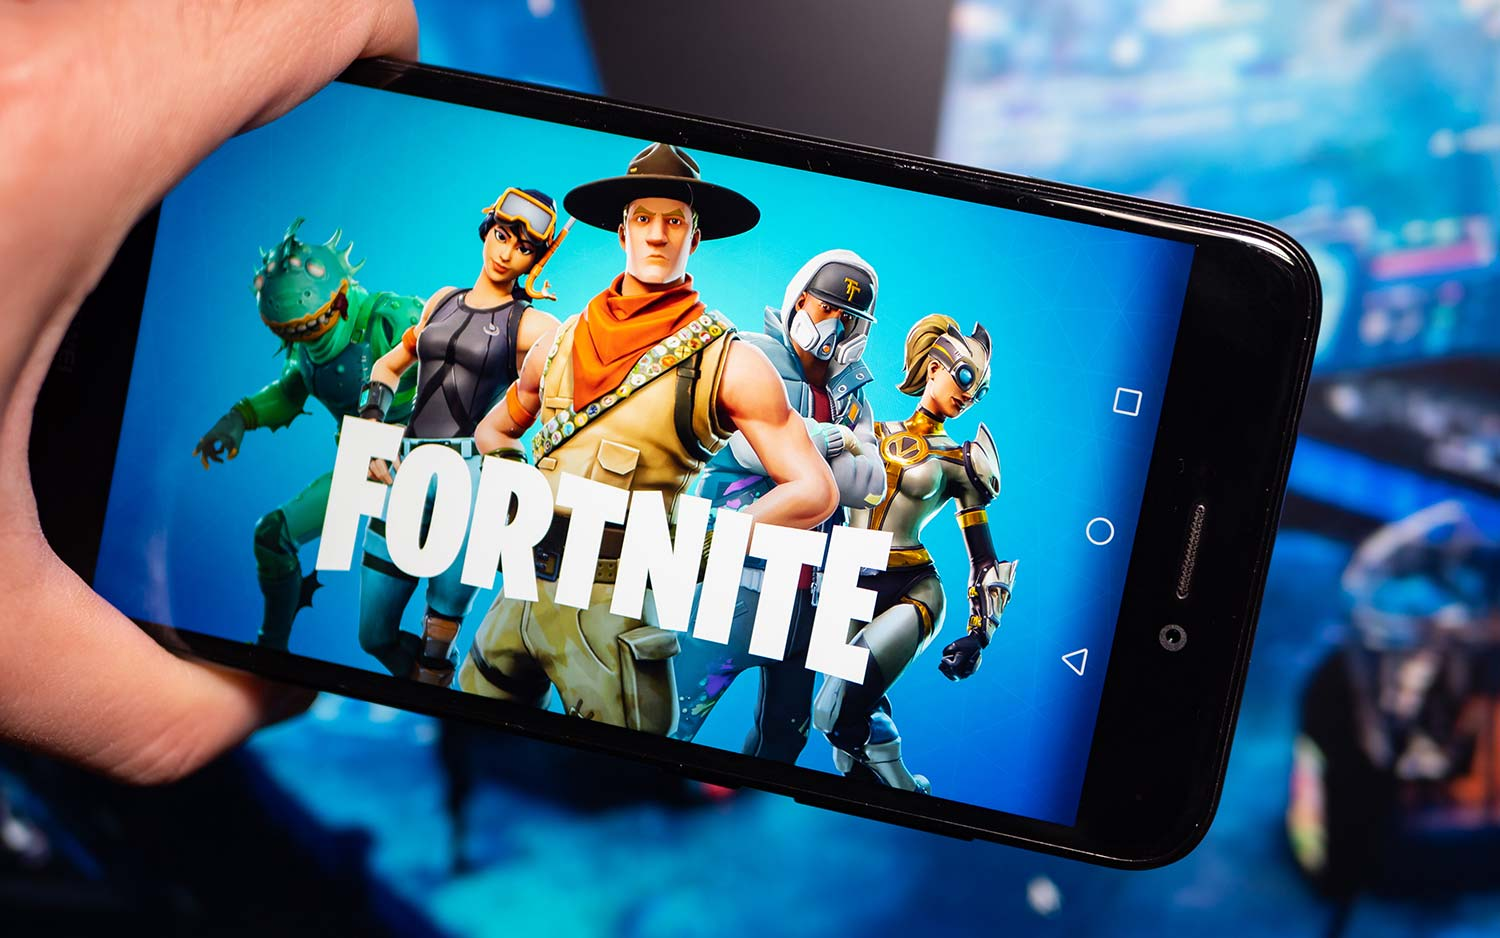 How to Get Fortnite on Switch, PC, PS4 and More | Tom's Guide